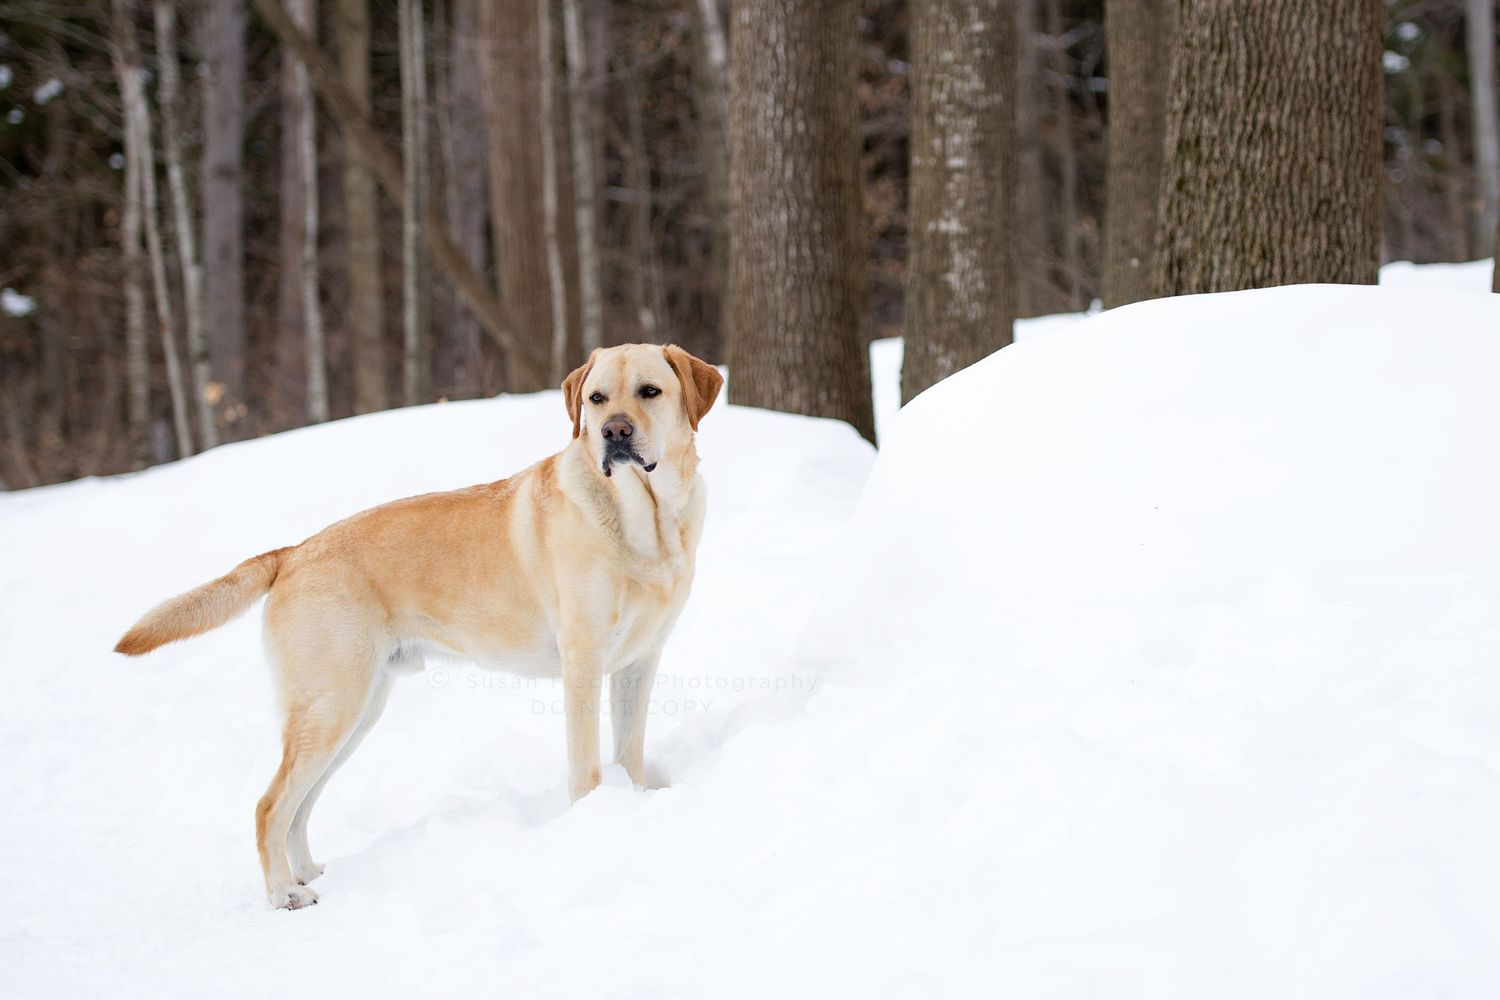 Yellow Labrador retriever dog standing in snowy forest